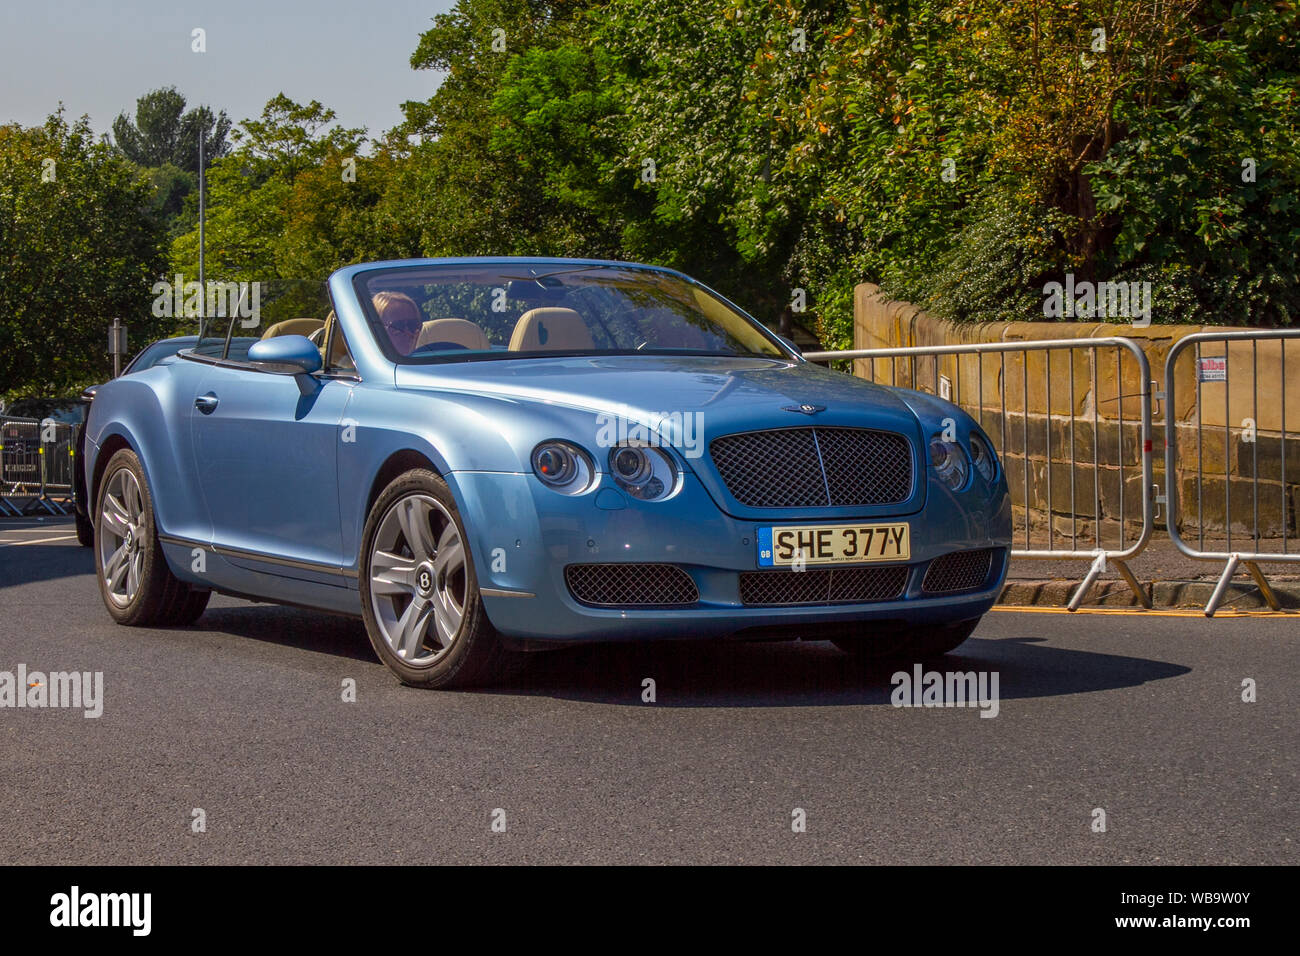 Bentley Continental Gt Convertible High Resolution Stock Photography And Images Alamy